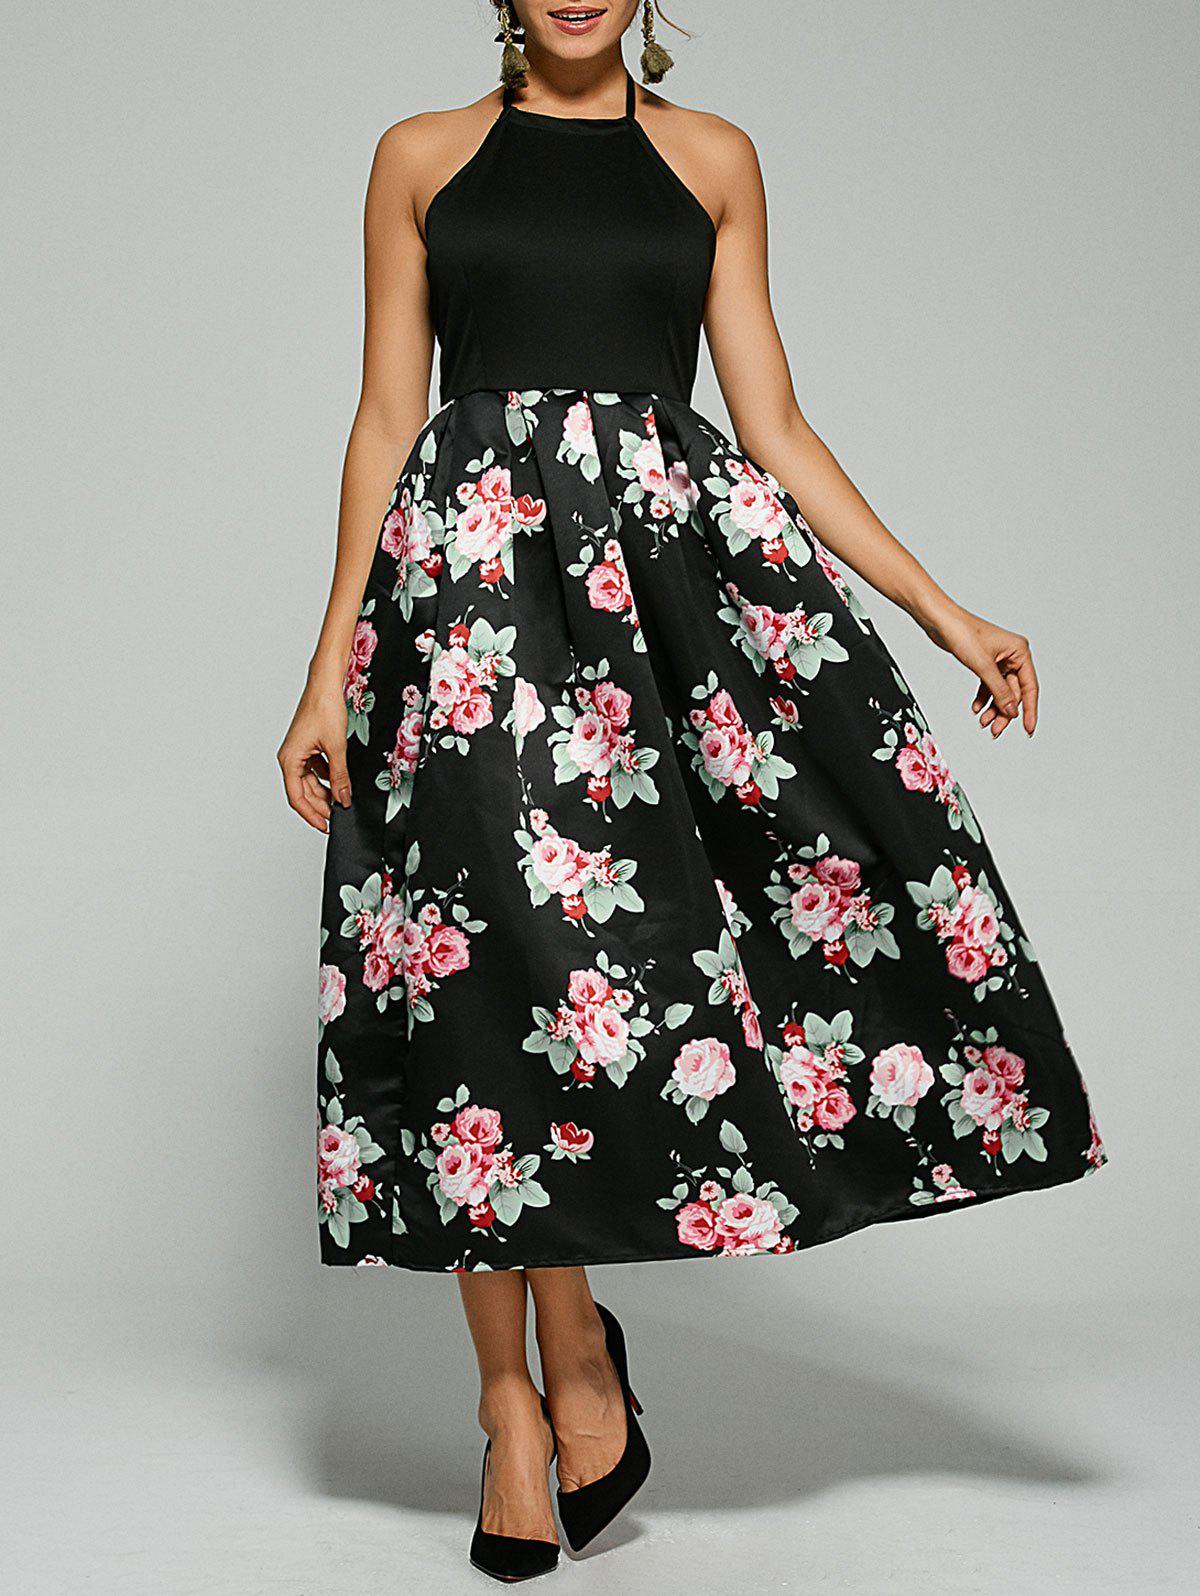 Floral Open Back Tea Length Dress - BLACK S